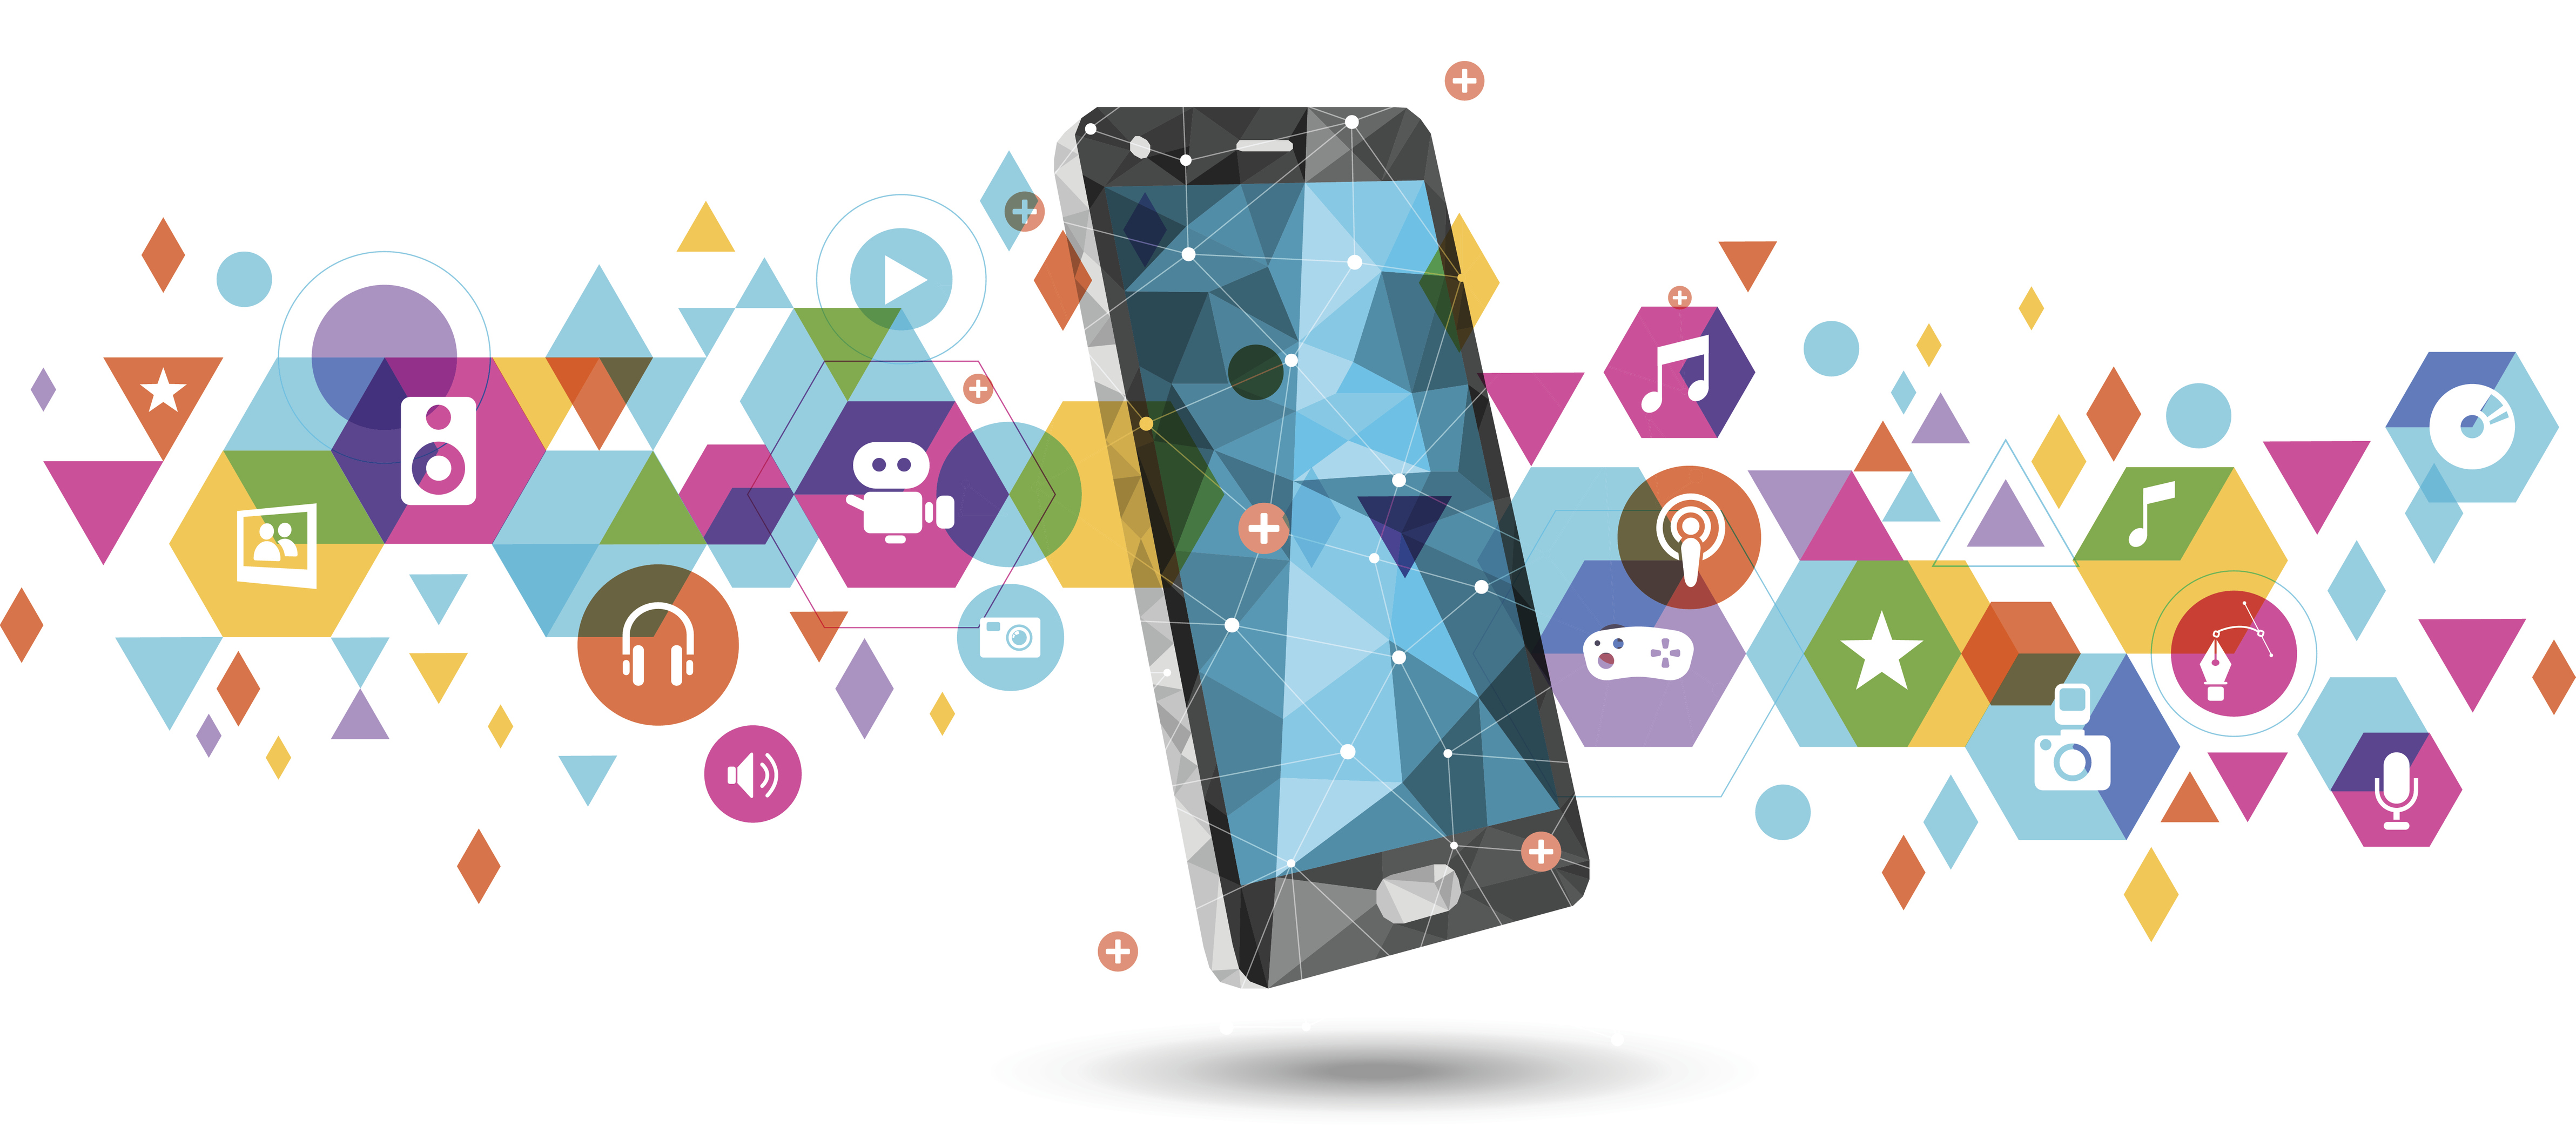 A Guide to App Prototyping for Beginners